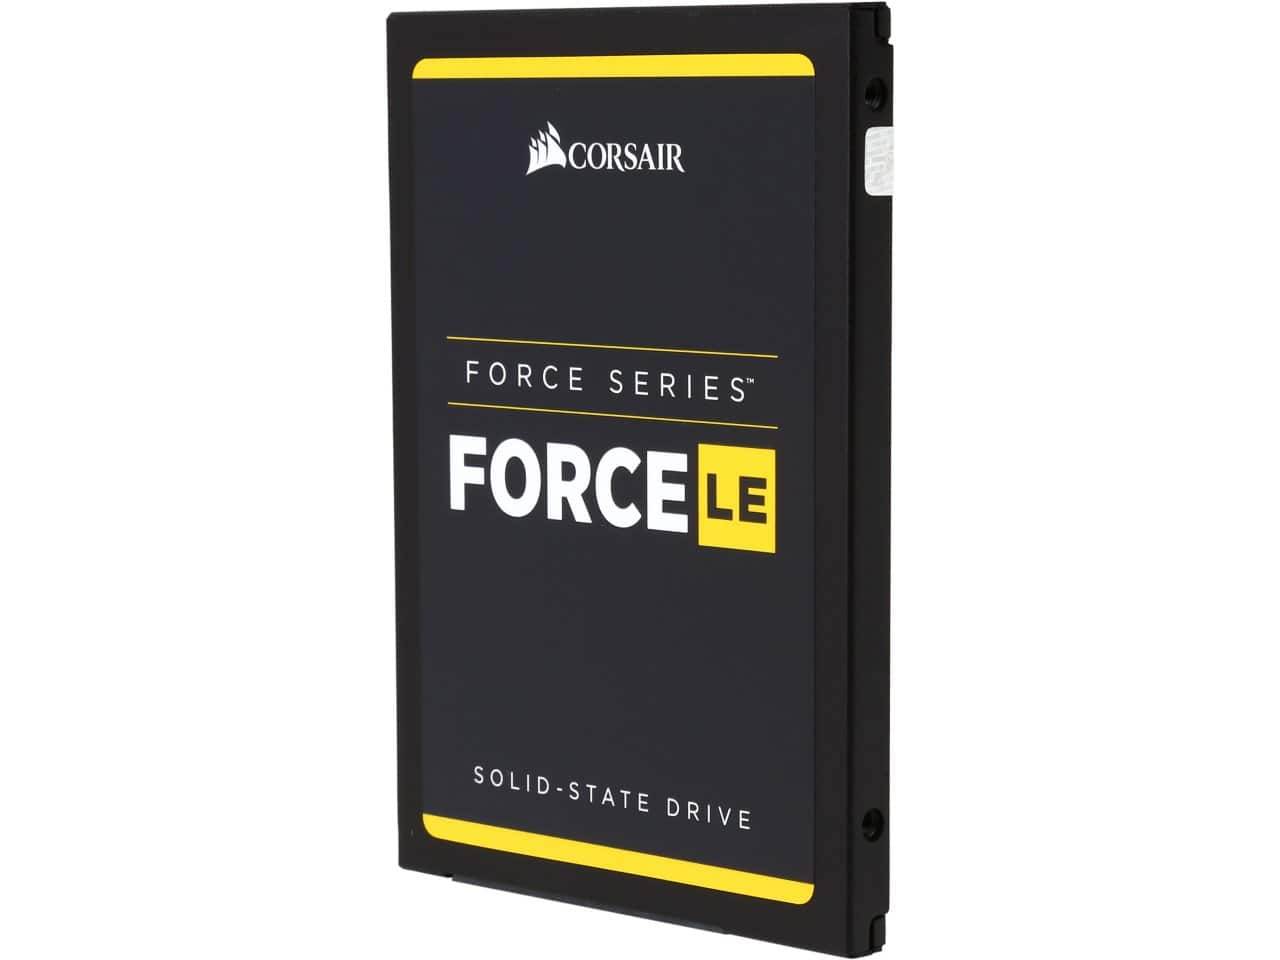 "240 GB Corsair Force LE 2.5"" SATA III TLC Internal SSD for $57.99, 2 TB Seagate Desktop HDD 3.5"" 7200 RPM SATA III Internal Hard Drive for $59.99 AC & More @ Newegg.com"